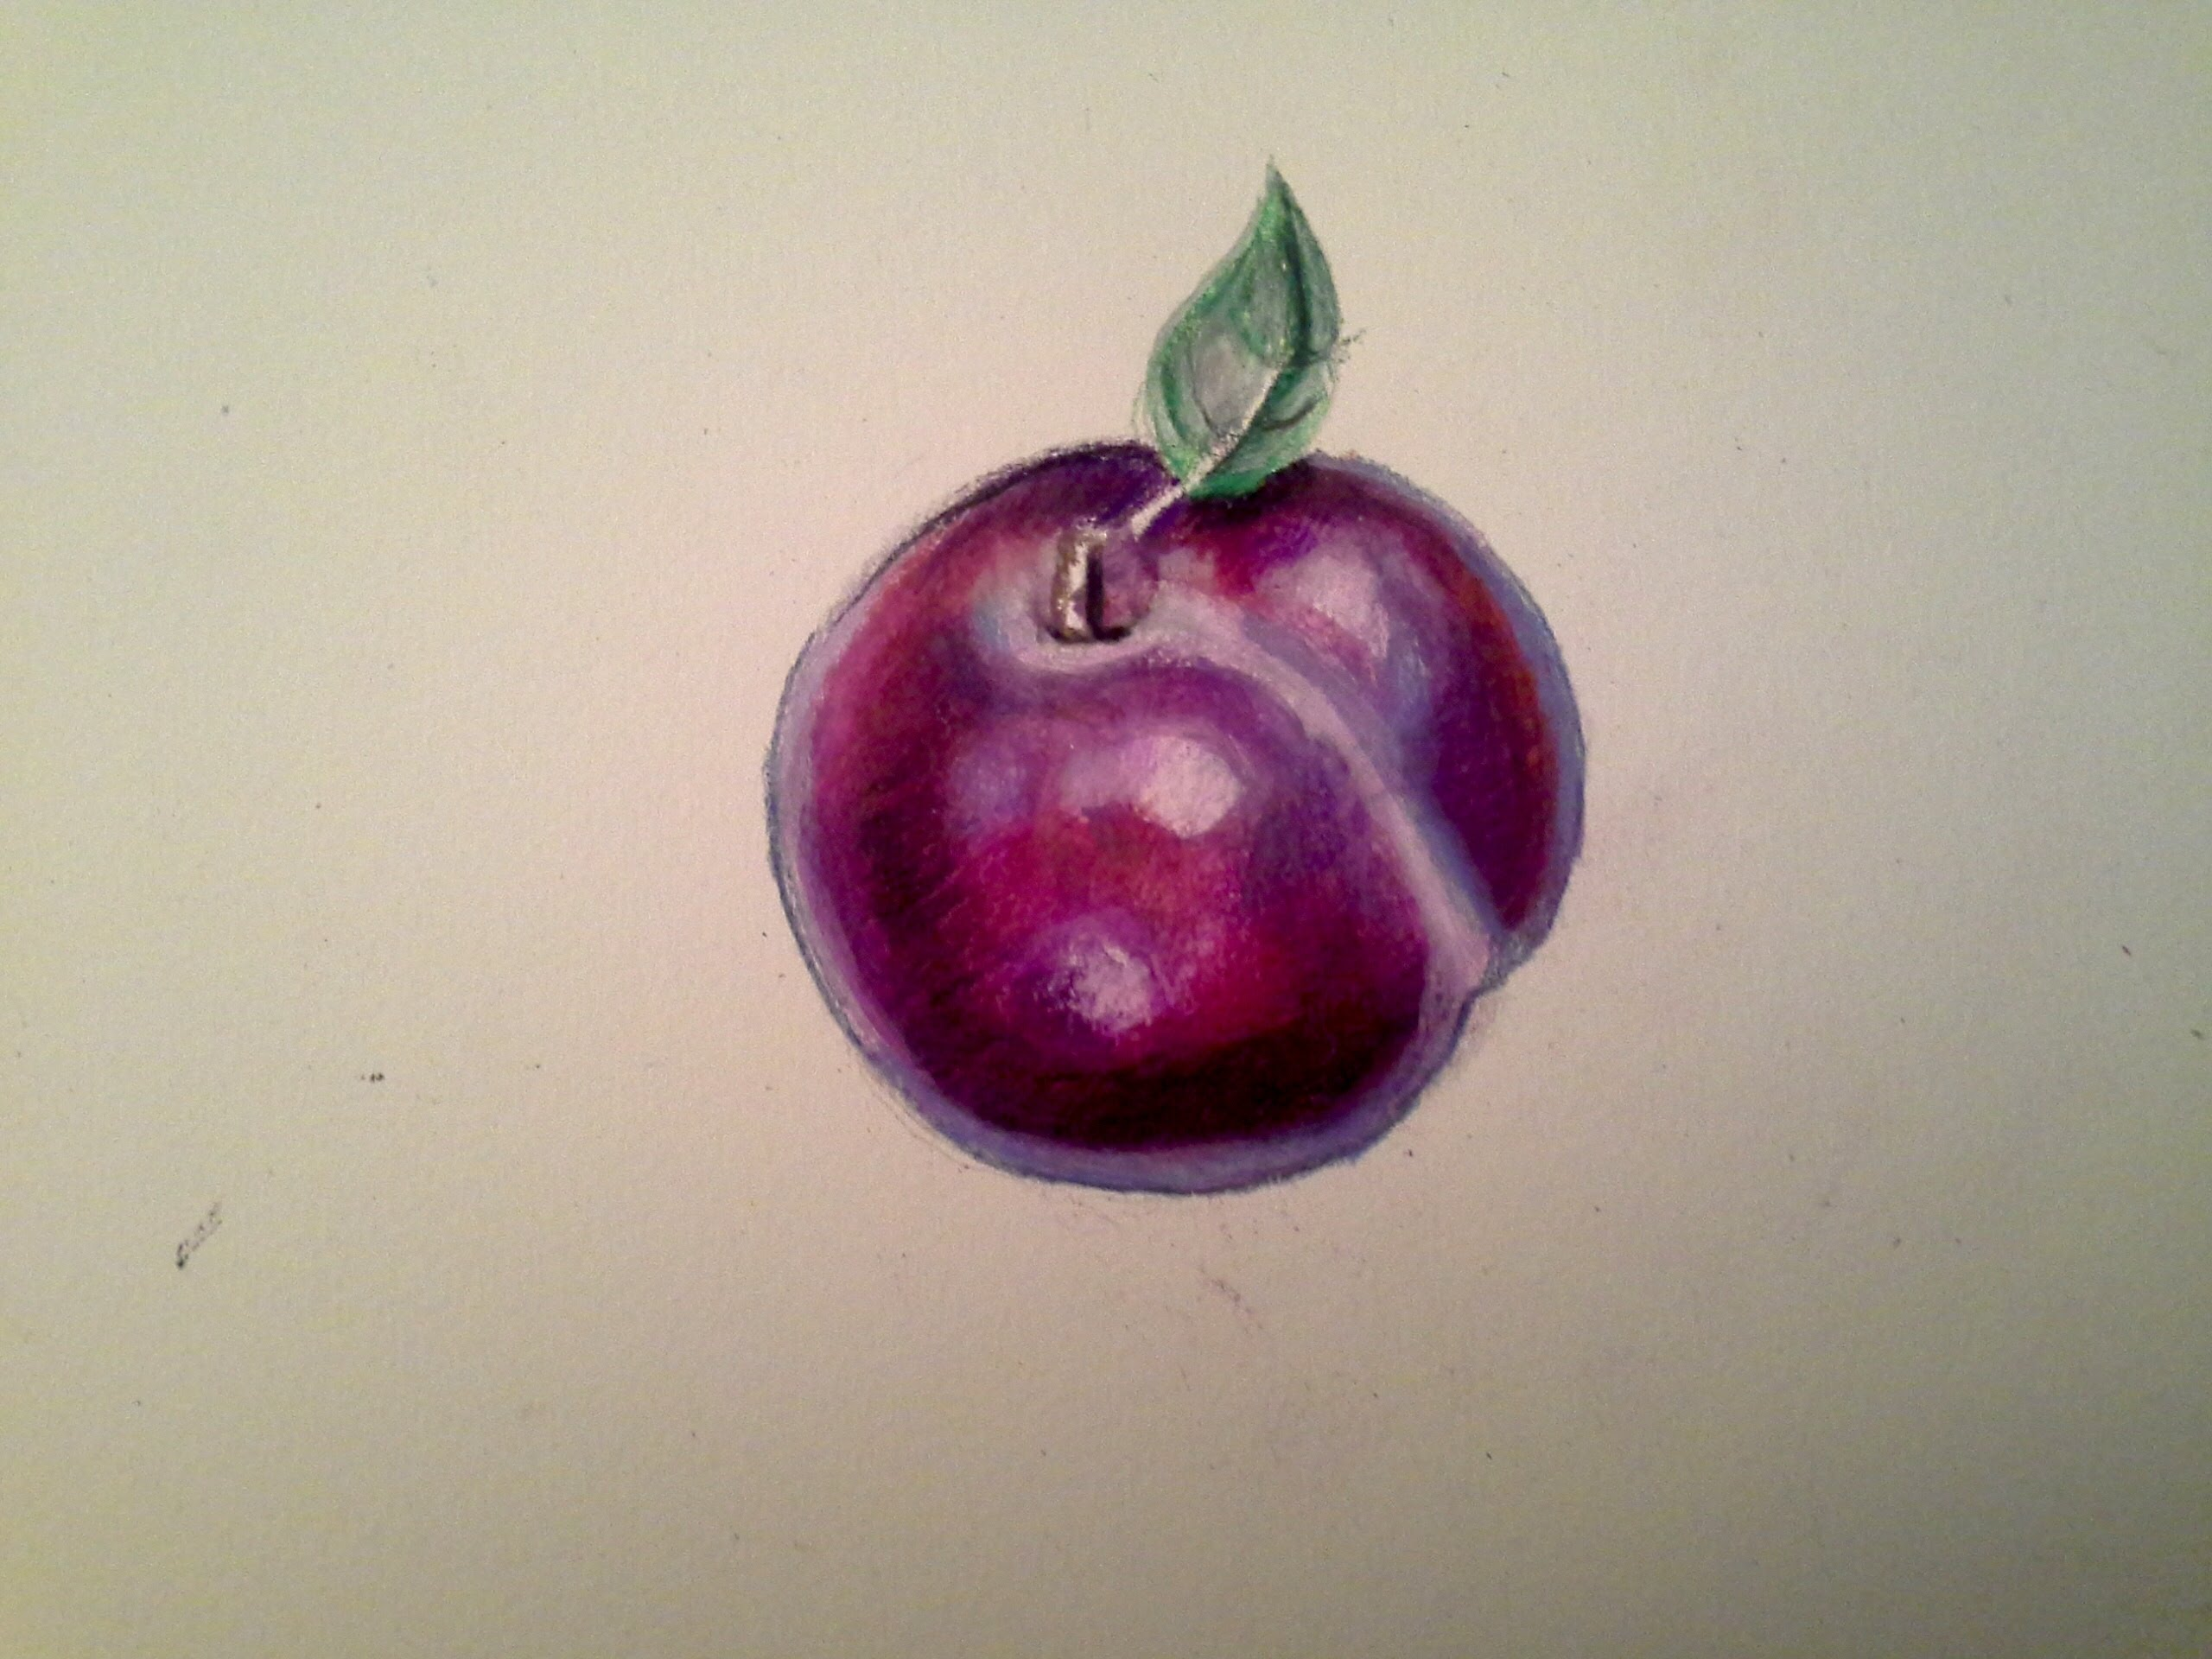 2560x1920 Youdraw Plum W Watercolor Pencils Amp Prismacolor Color Pencils